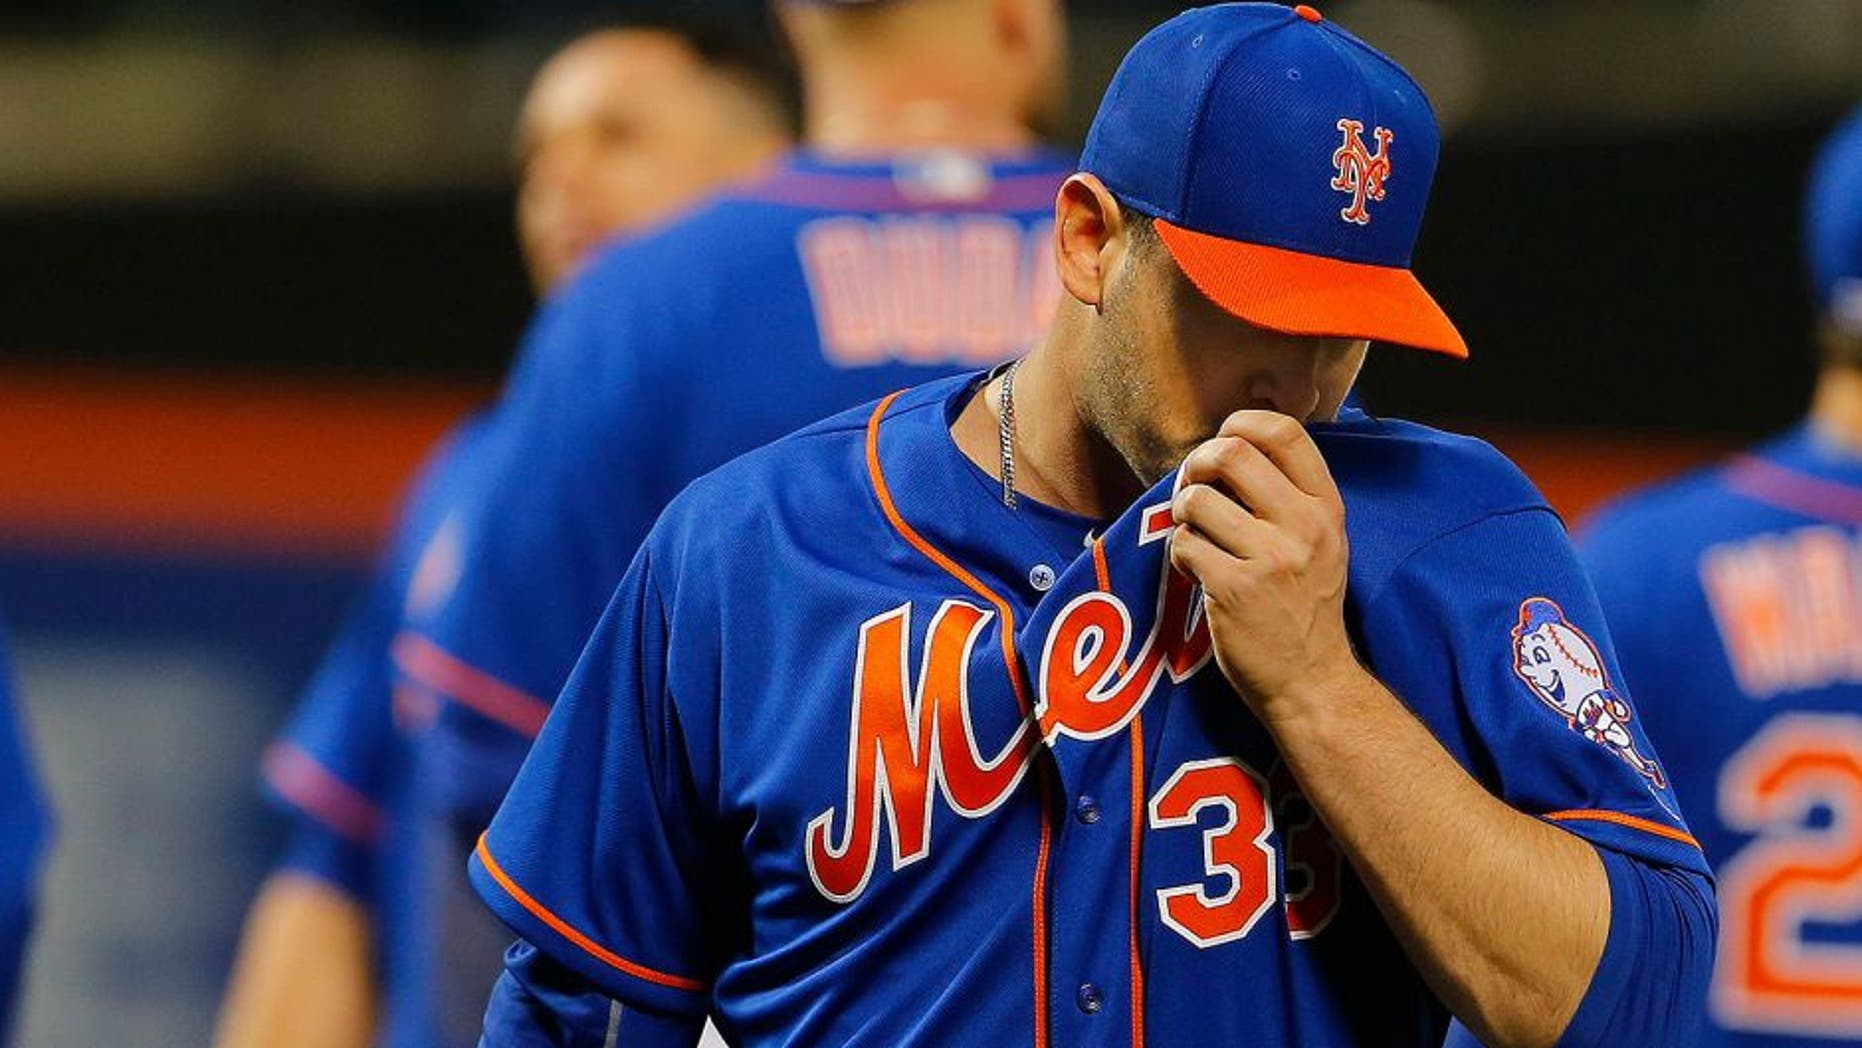 NEW YORK, NY - MAY 19: Pitcher Matt Harvey #33 of the New York Mets walks off the mound after being relieved during the third inning of a game against the Washington Nationals at Citi Field on May 19, 2016 in the Flushing neighborhood of the Queens borough of New York City. (Photo by Rich Schultz/Getty Images)